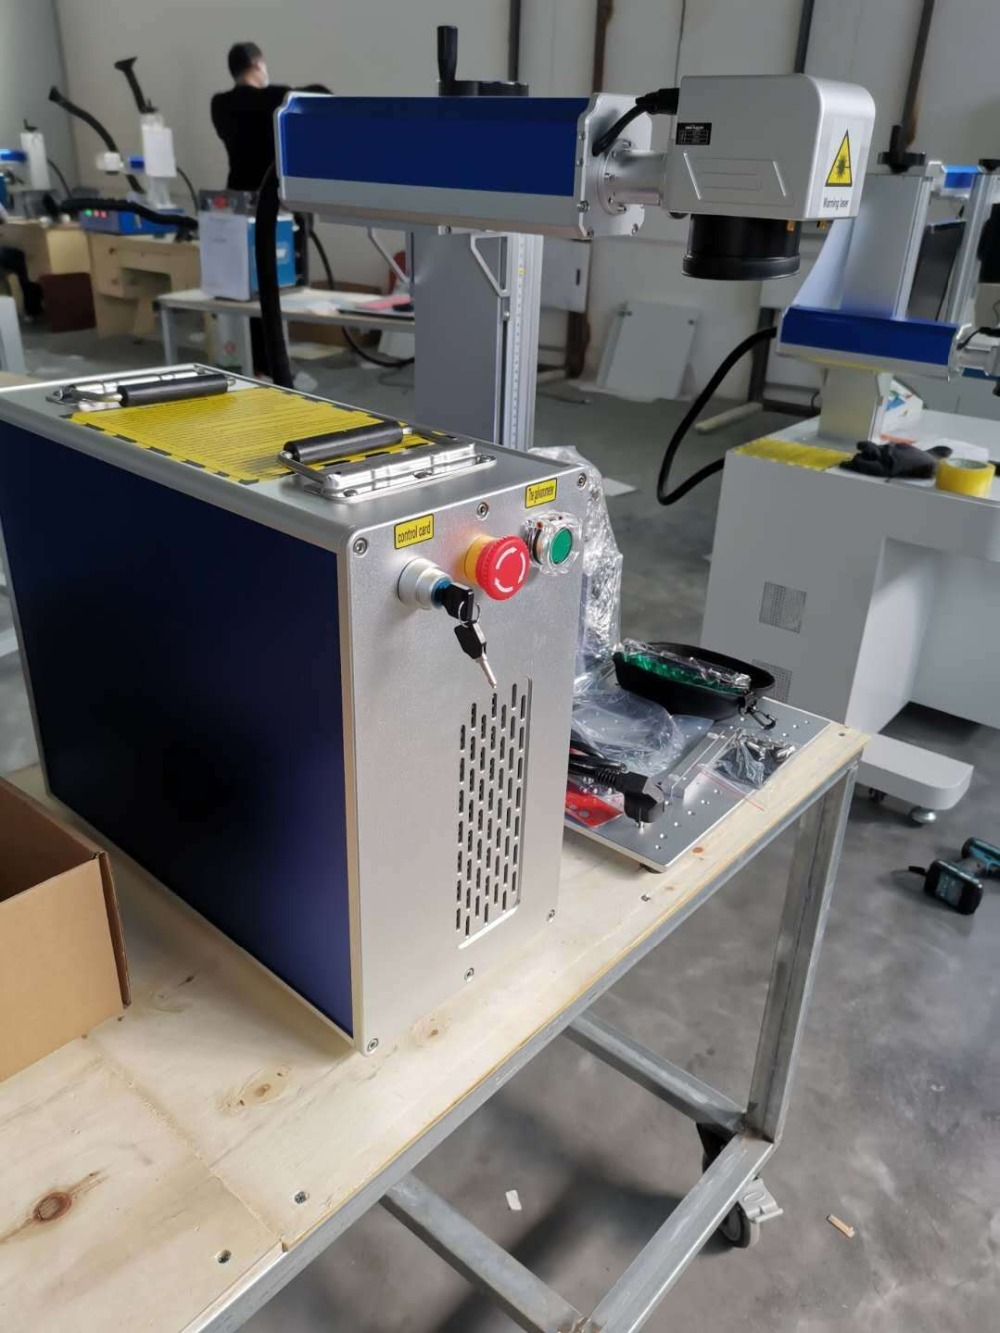 30W MAX Raycus And JPT Fiber Laser Marking Machine With 200-200mm Working Table 10